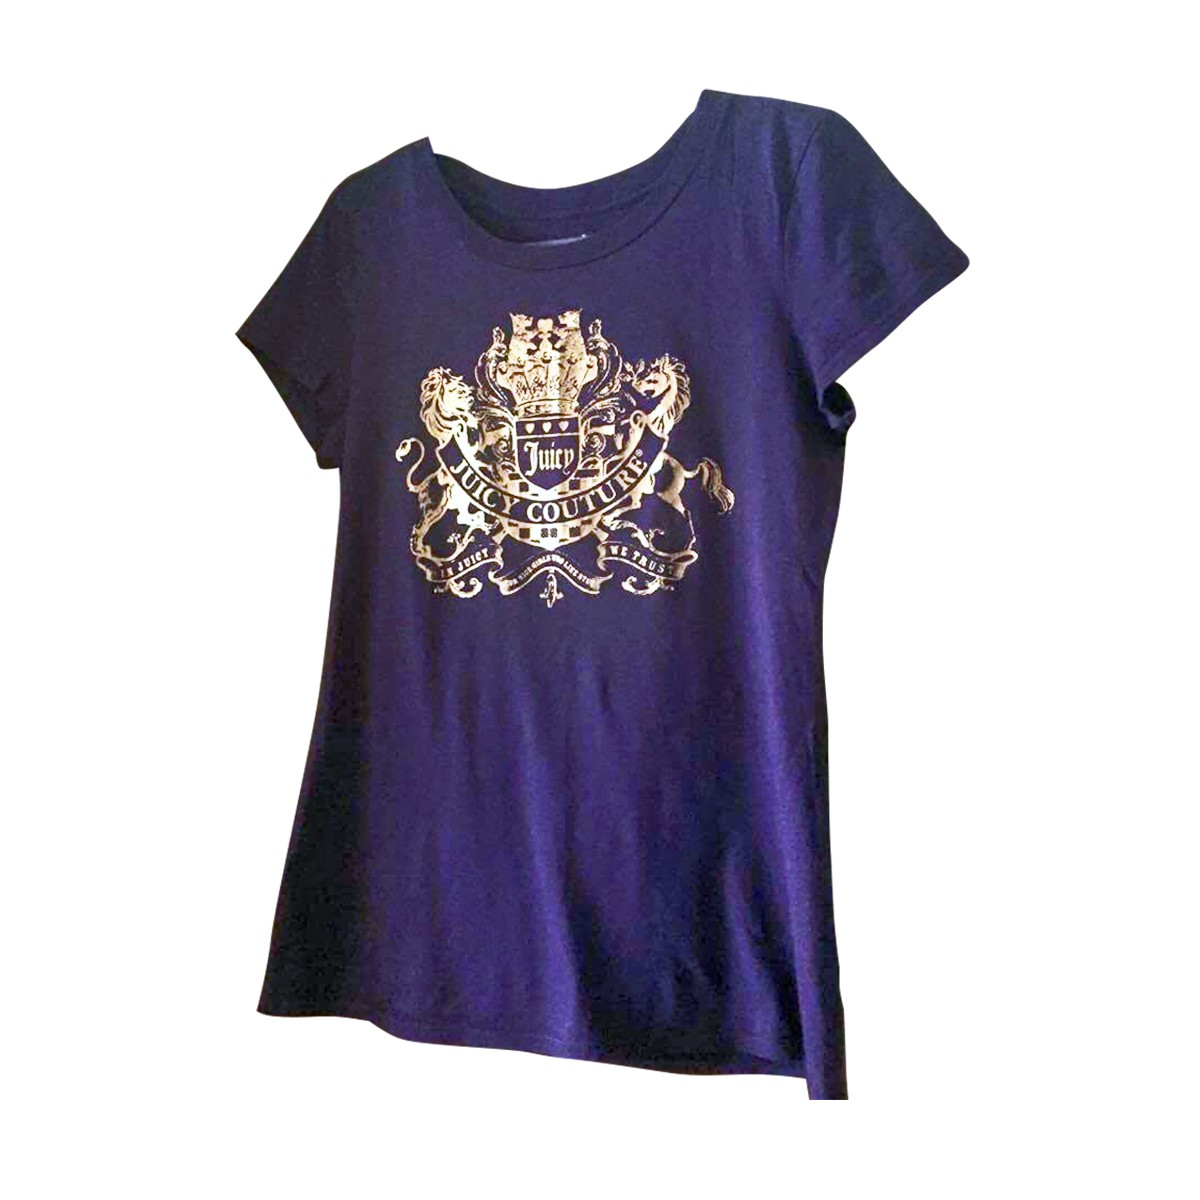 9a53782b75c4 Juicy Couture t-shirt in purple - Women